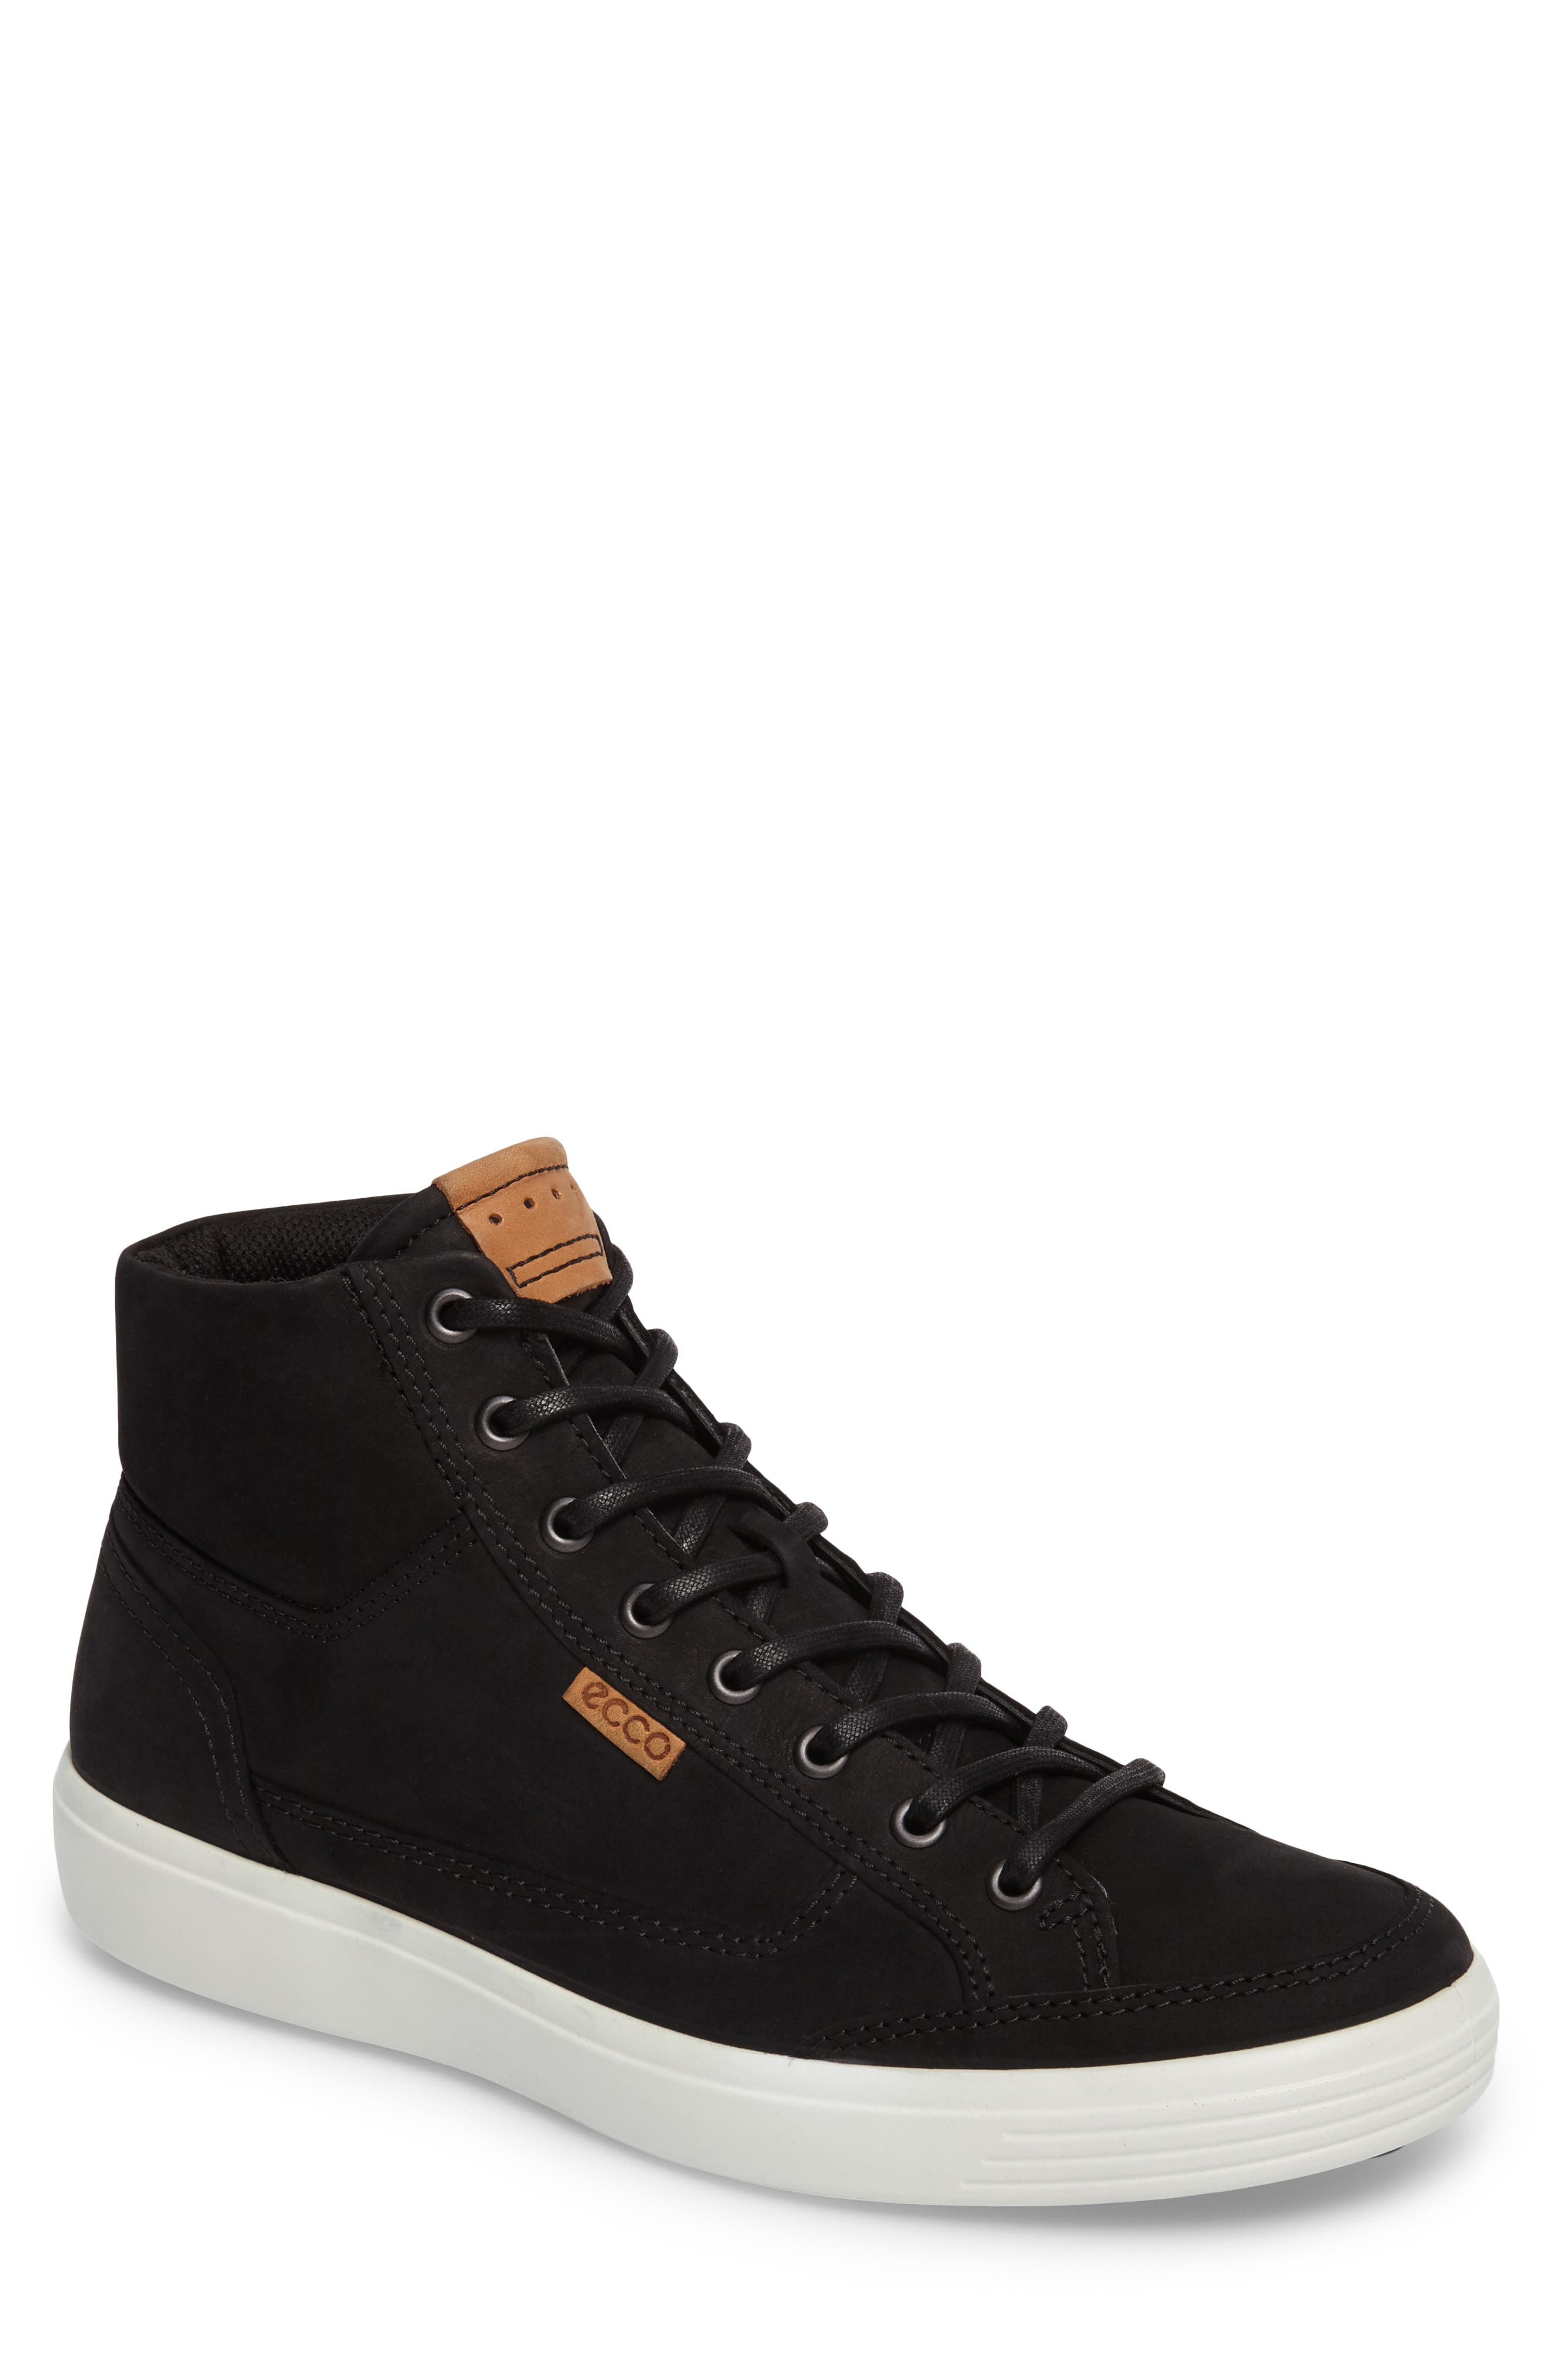 Soft 7 Sneaker,                         Main,                         color, BLACK LEATHER